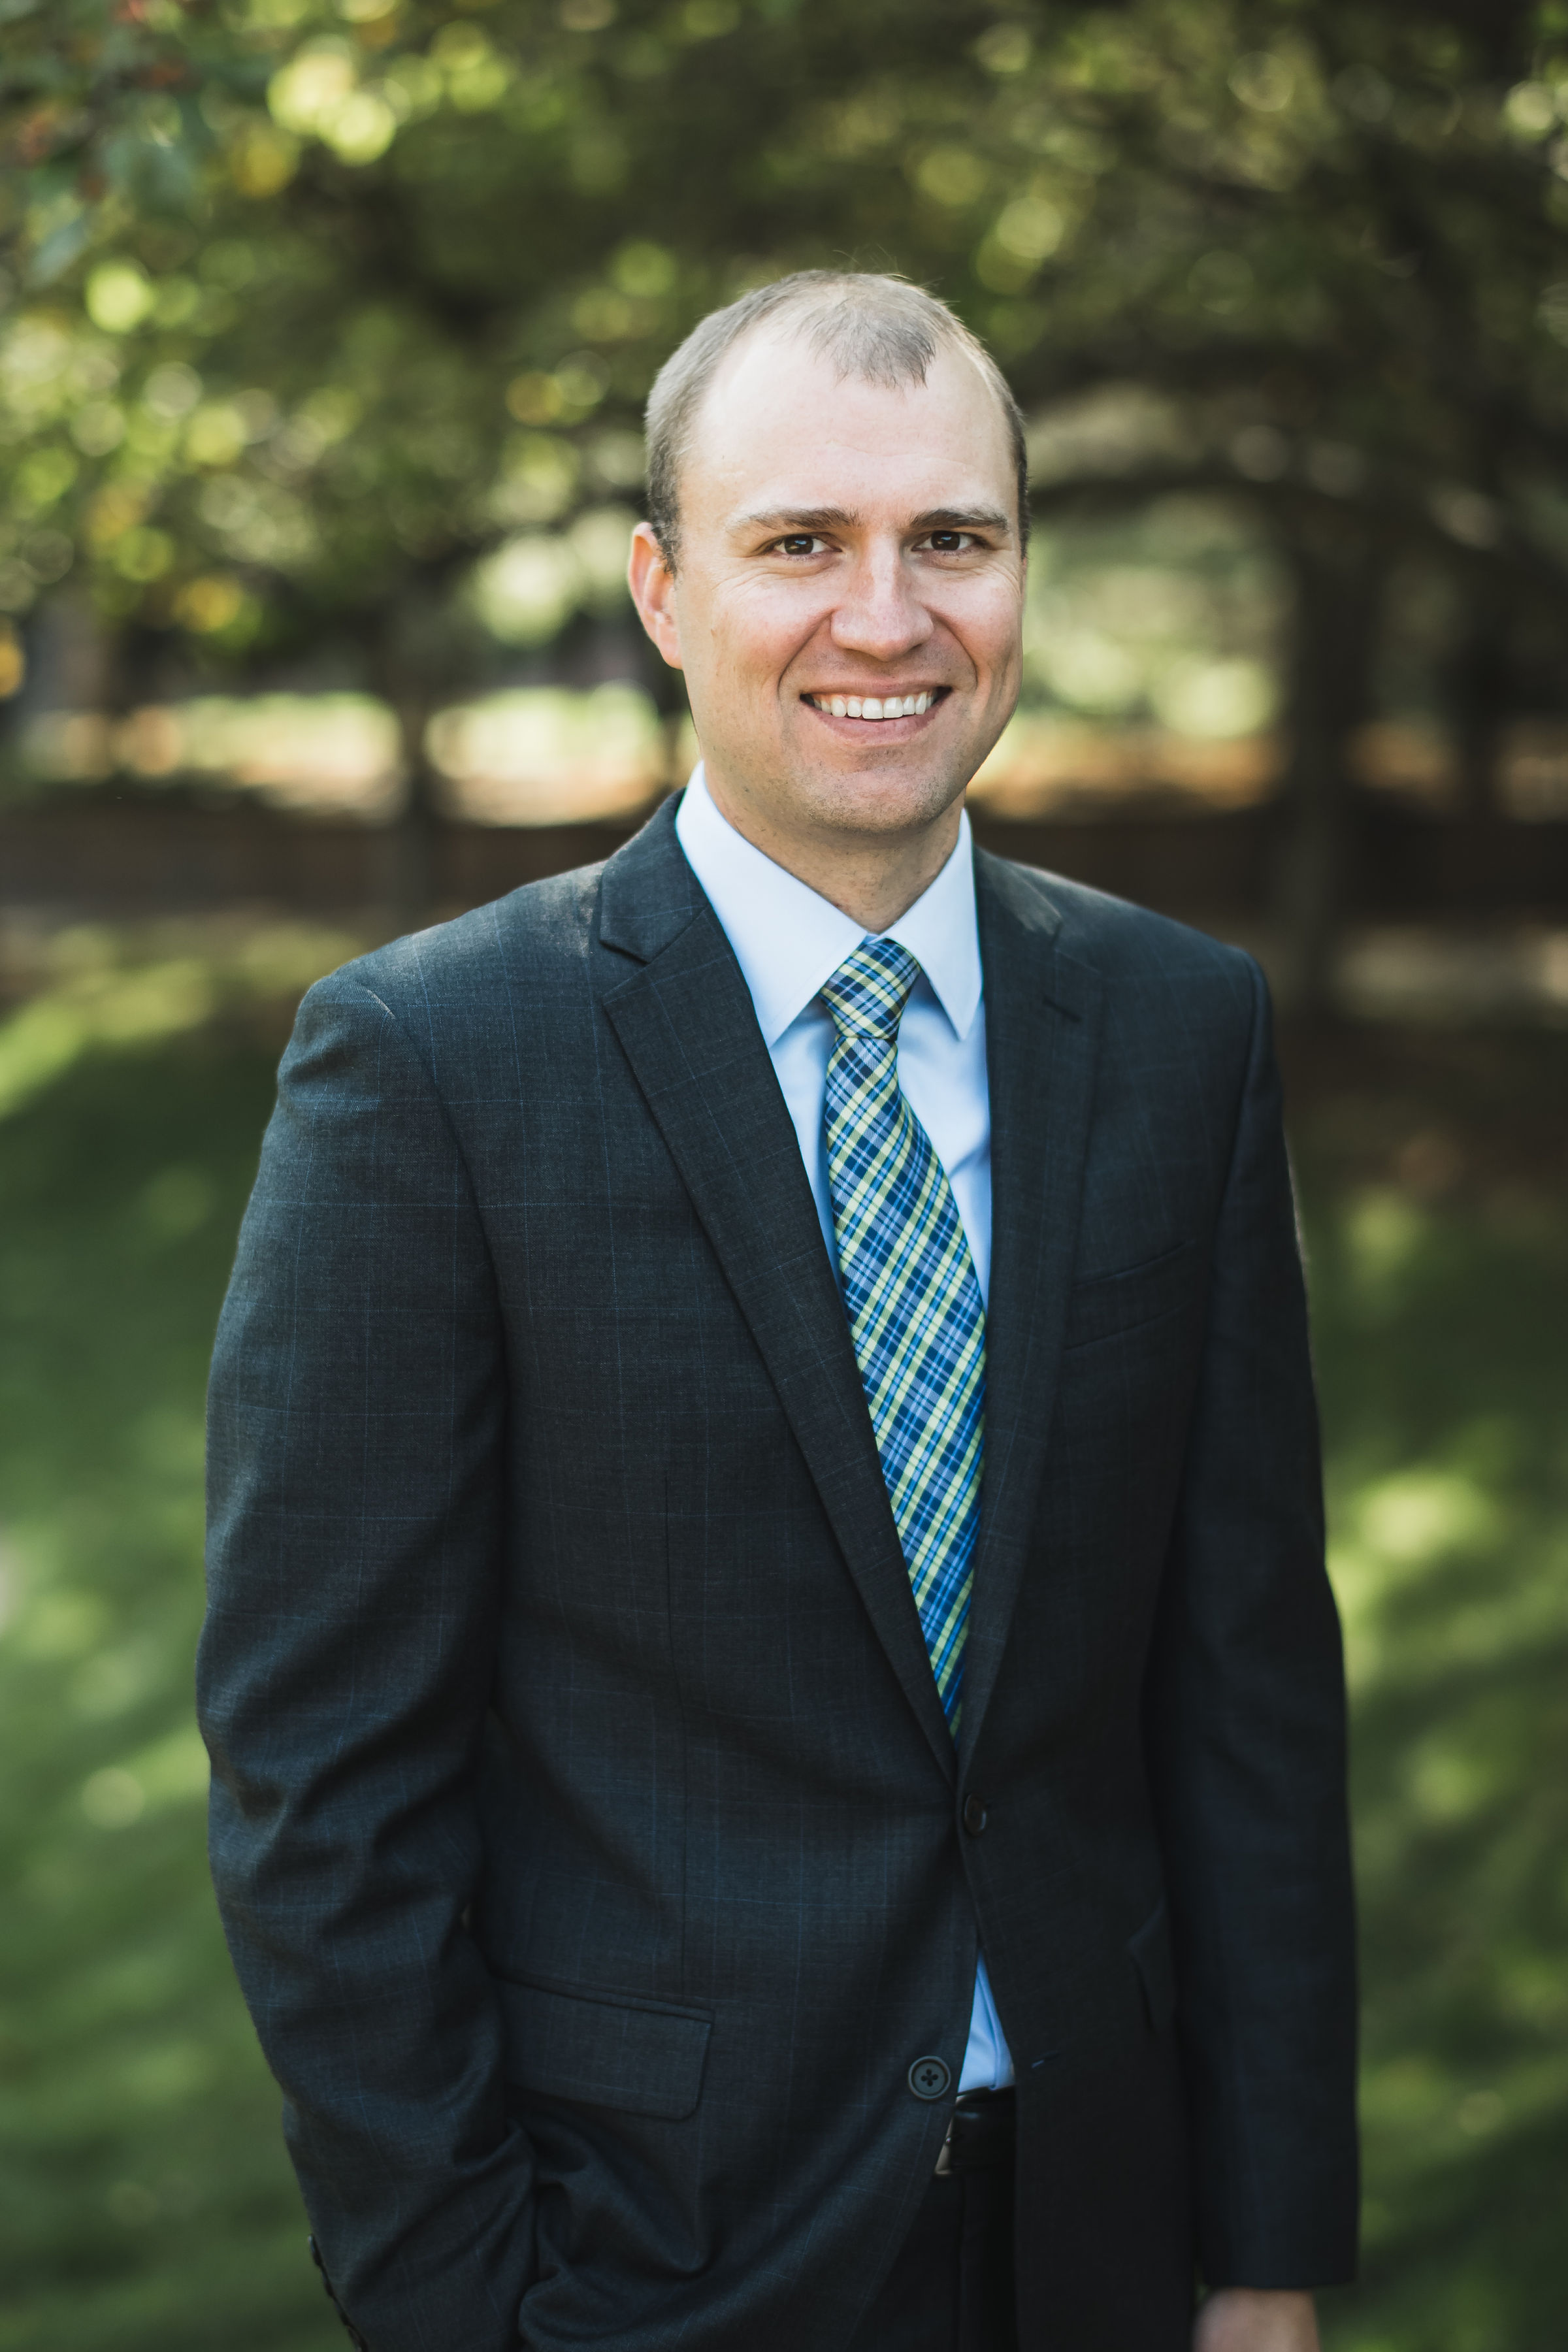 Taylor Sundeen is a financial advisor at the great waters financial Minnetonka office